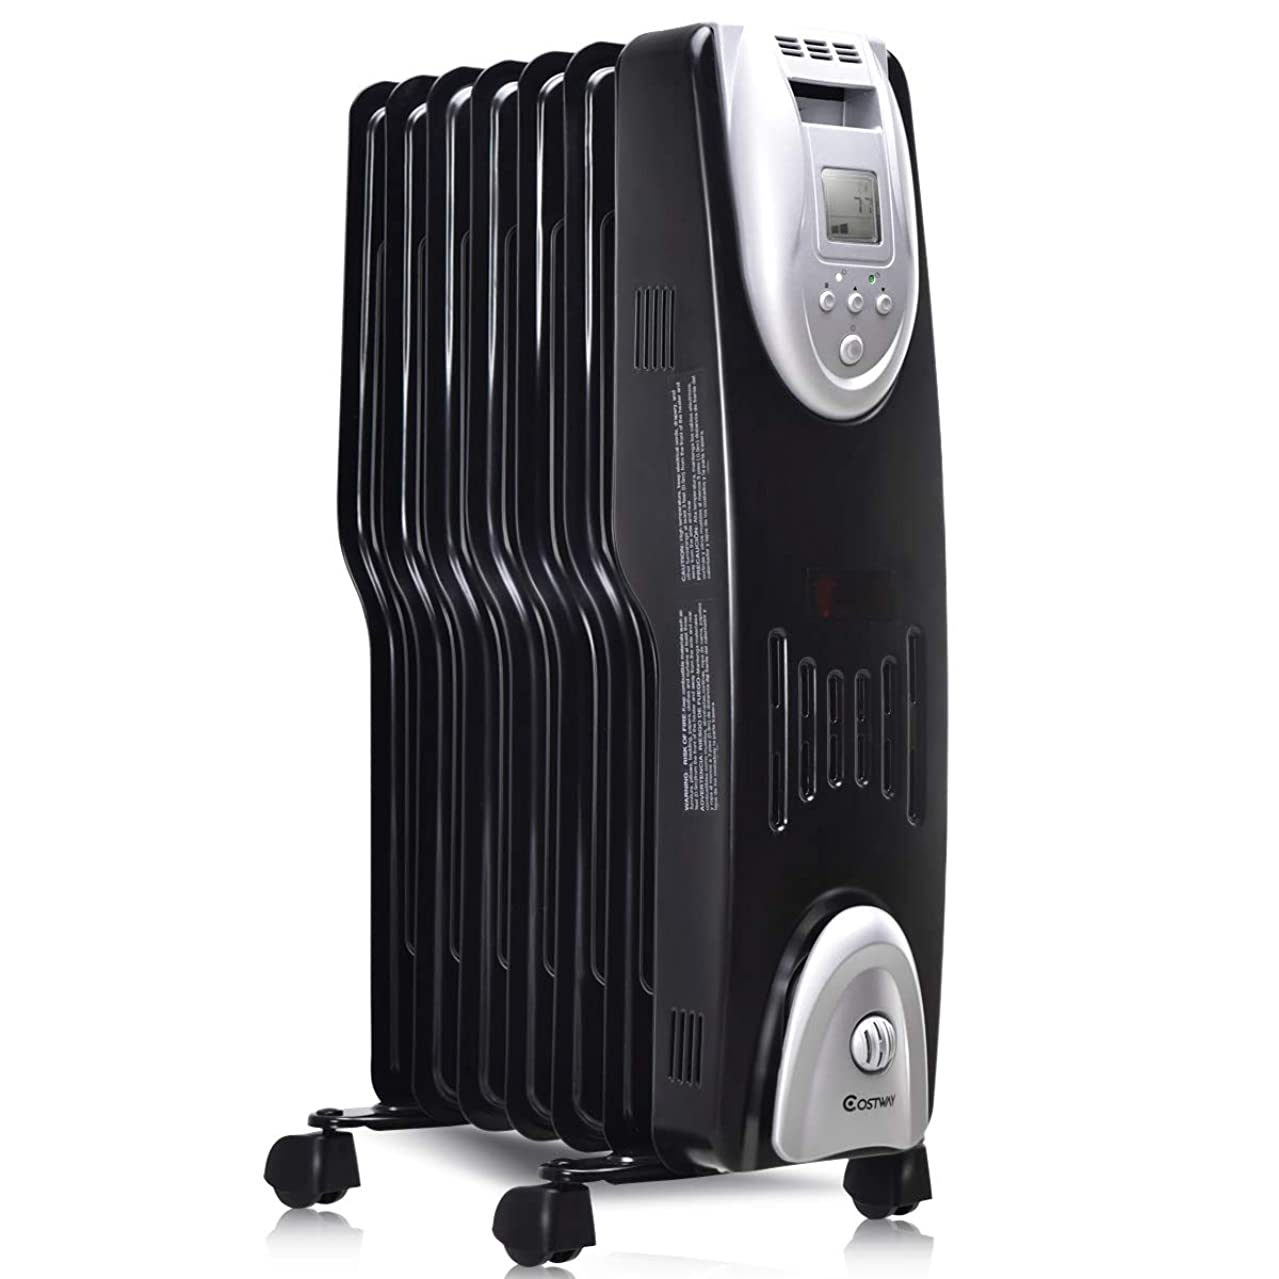 COSTWAY Oil Filled Radiator Heater Portable Electric heater with Digital Adjustable Thermostat W/Time Control(24.5